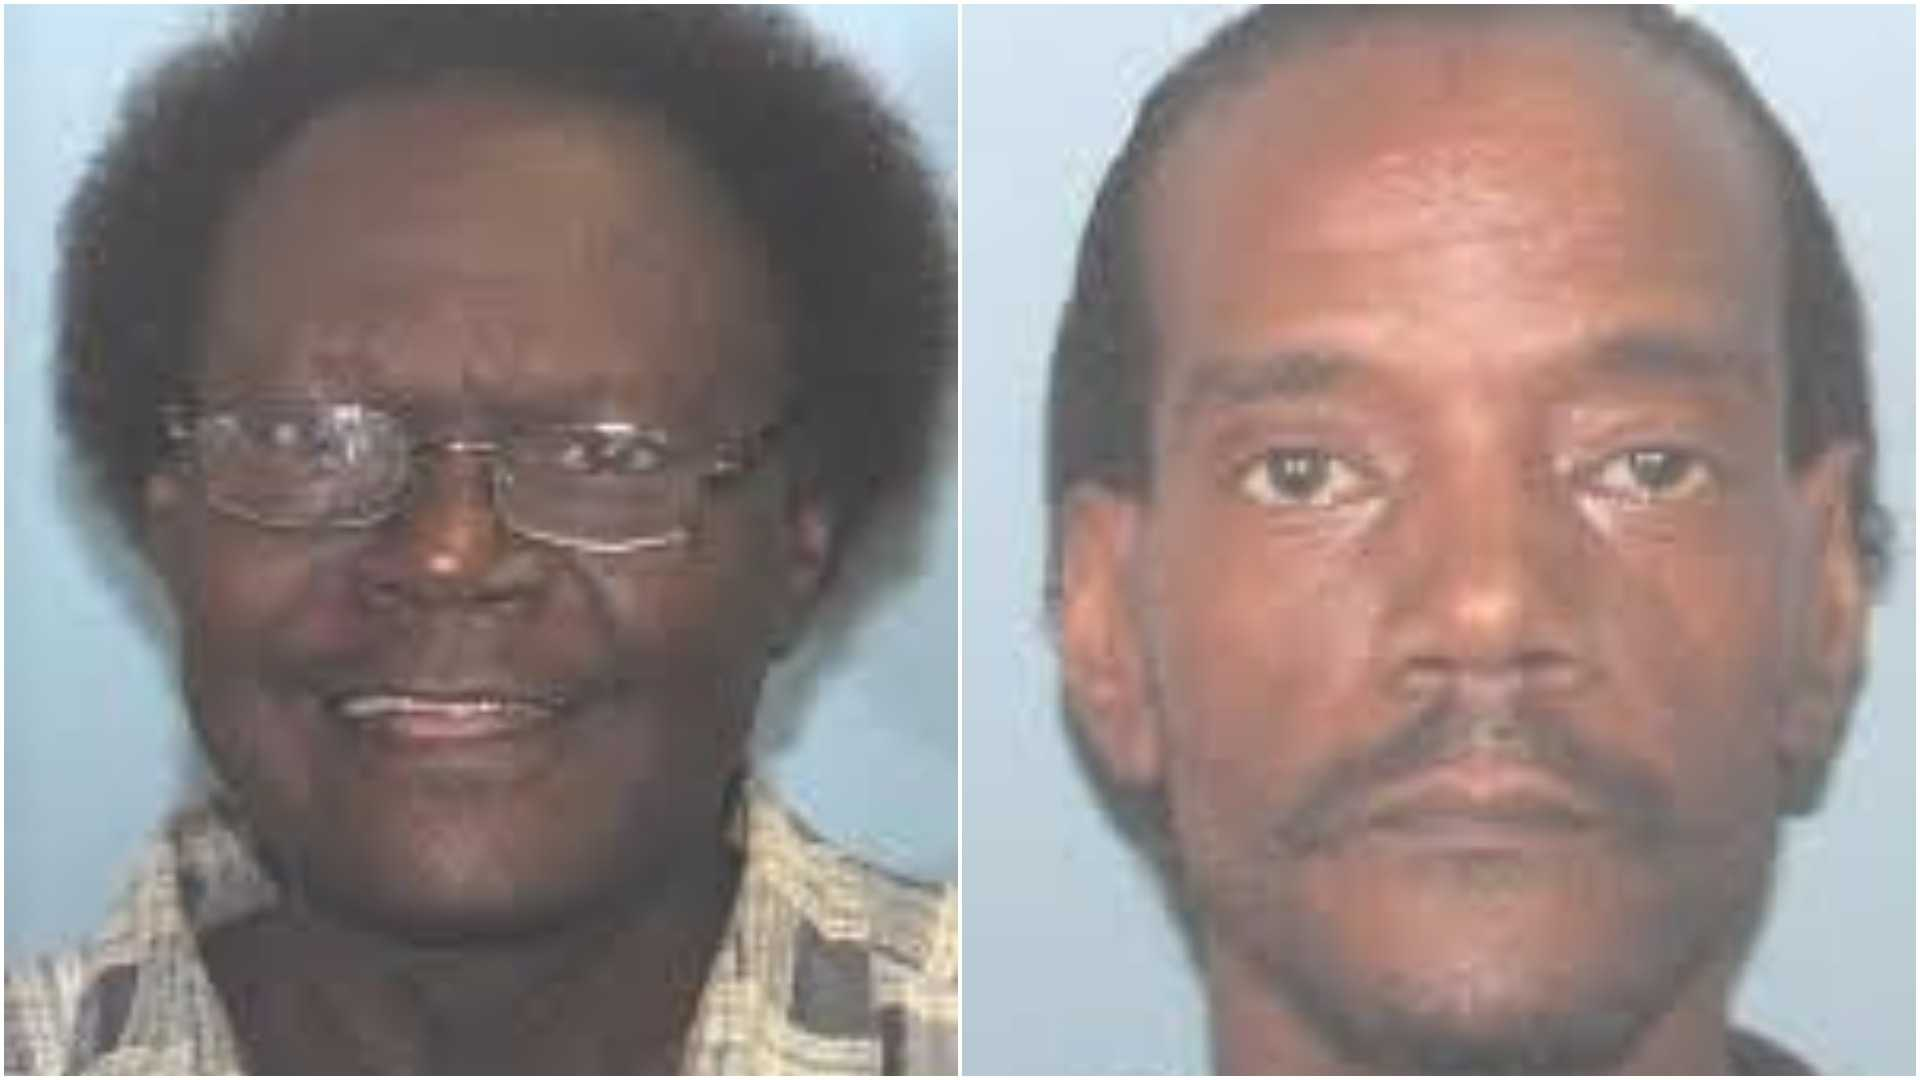 Darwin Weaver, left, and Rick Johnson were involved in a fatal confrontation Friday night, deputies say.